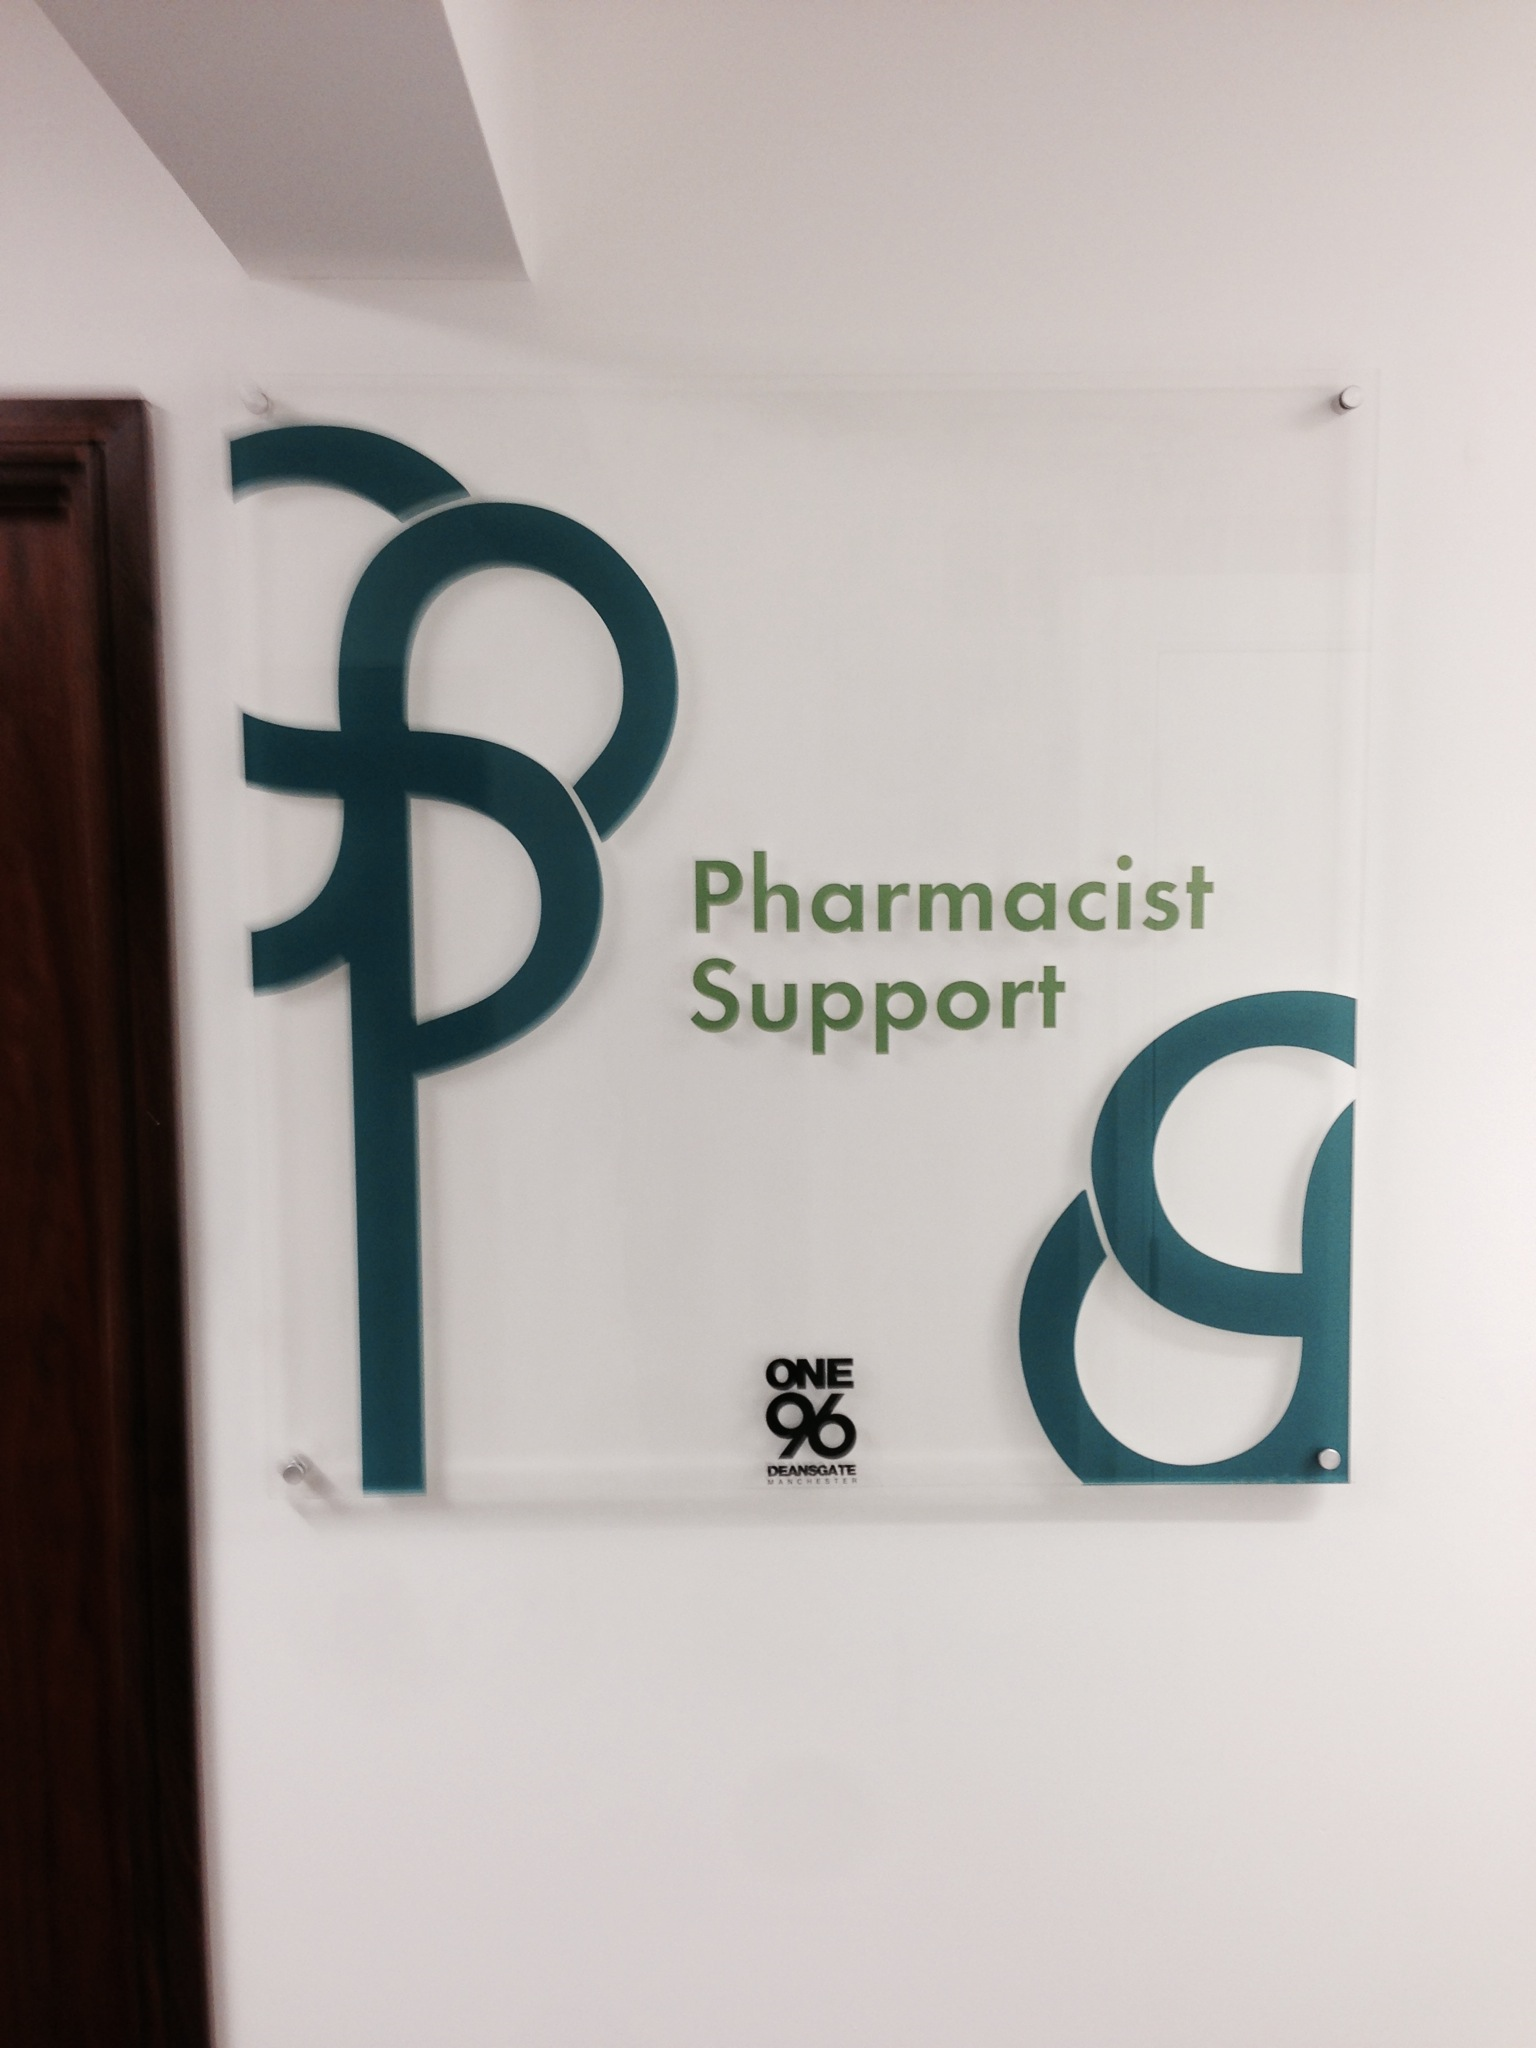 Pharmacist Support Acrylic Directories for Receptions